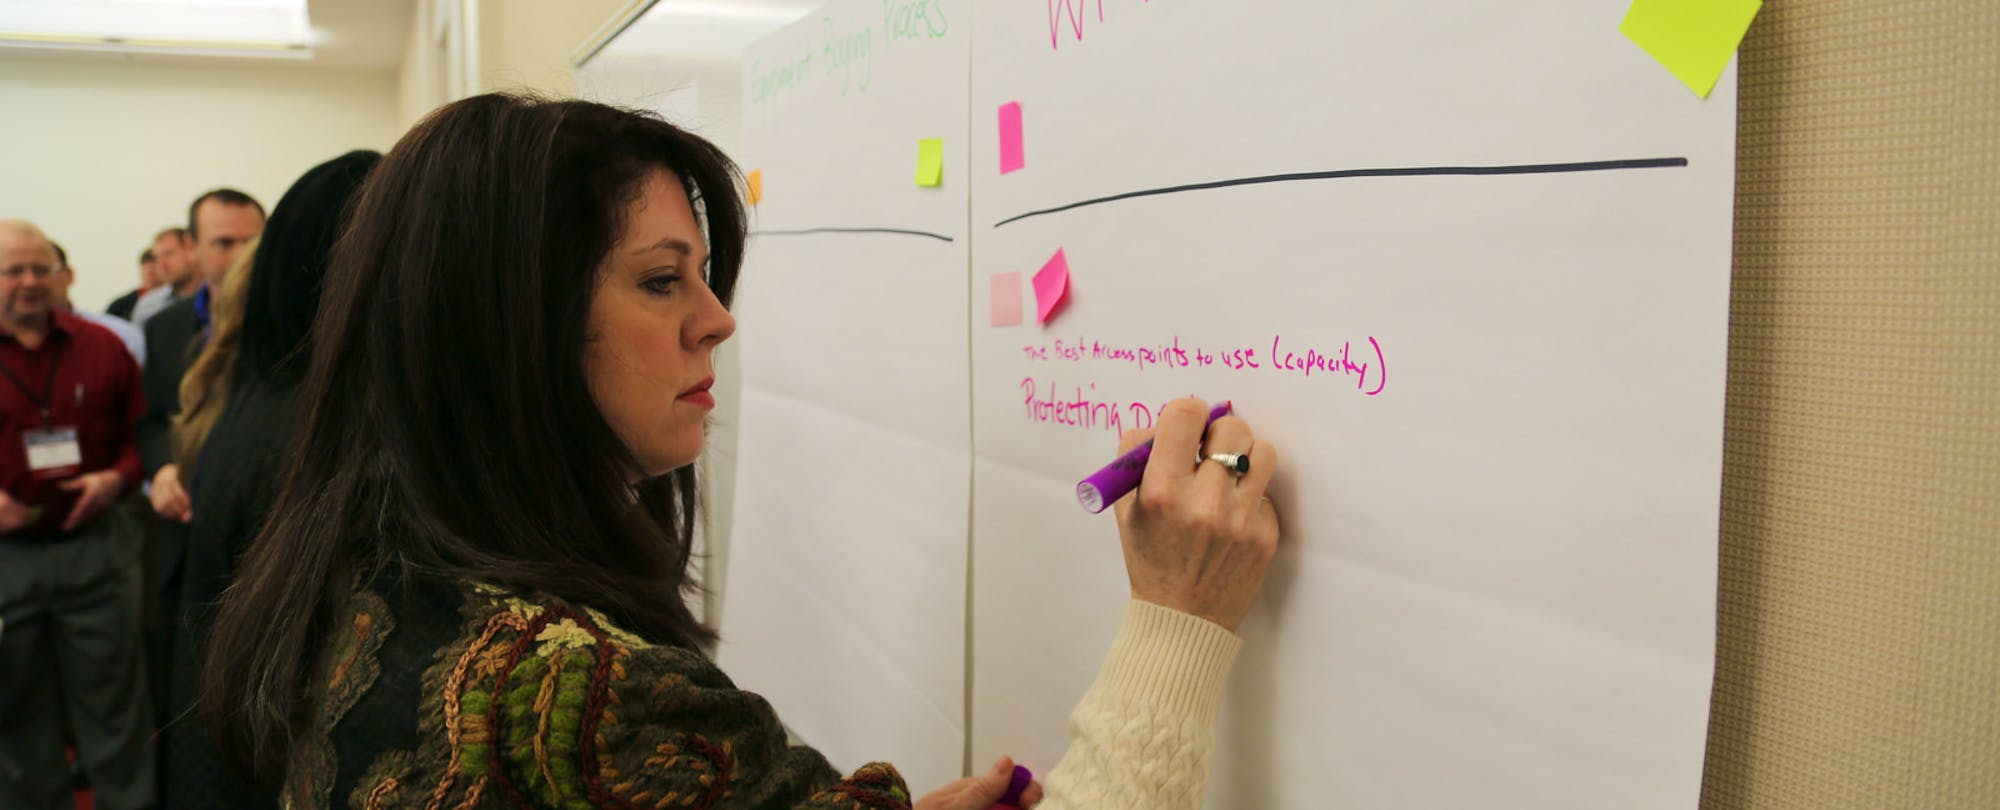 Two Days, One Pledge: At the Future Ready Summits, District Leaders Move from Vision to Action